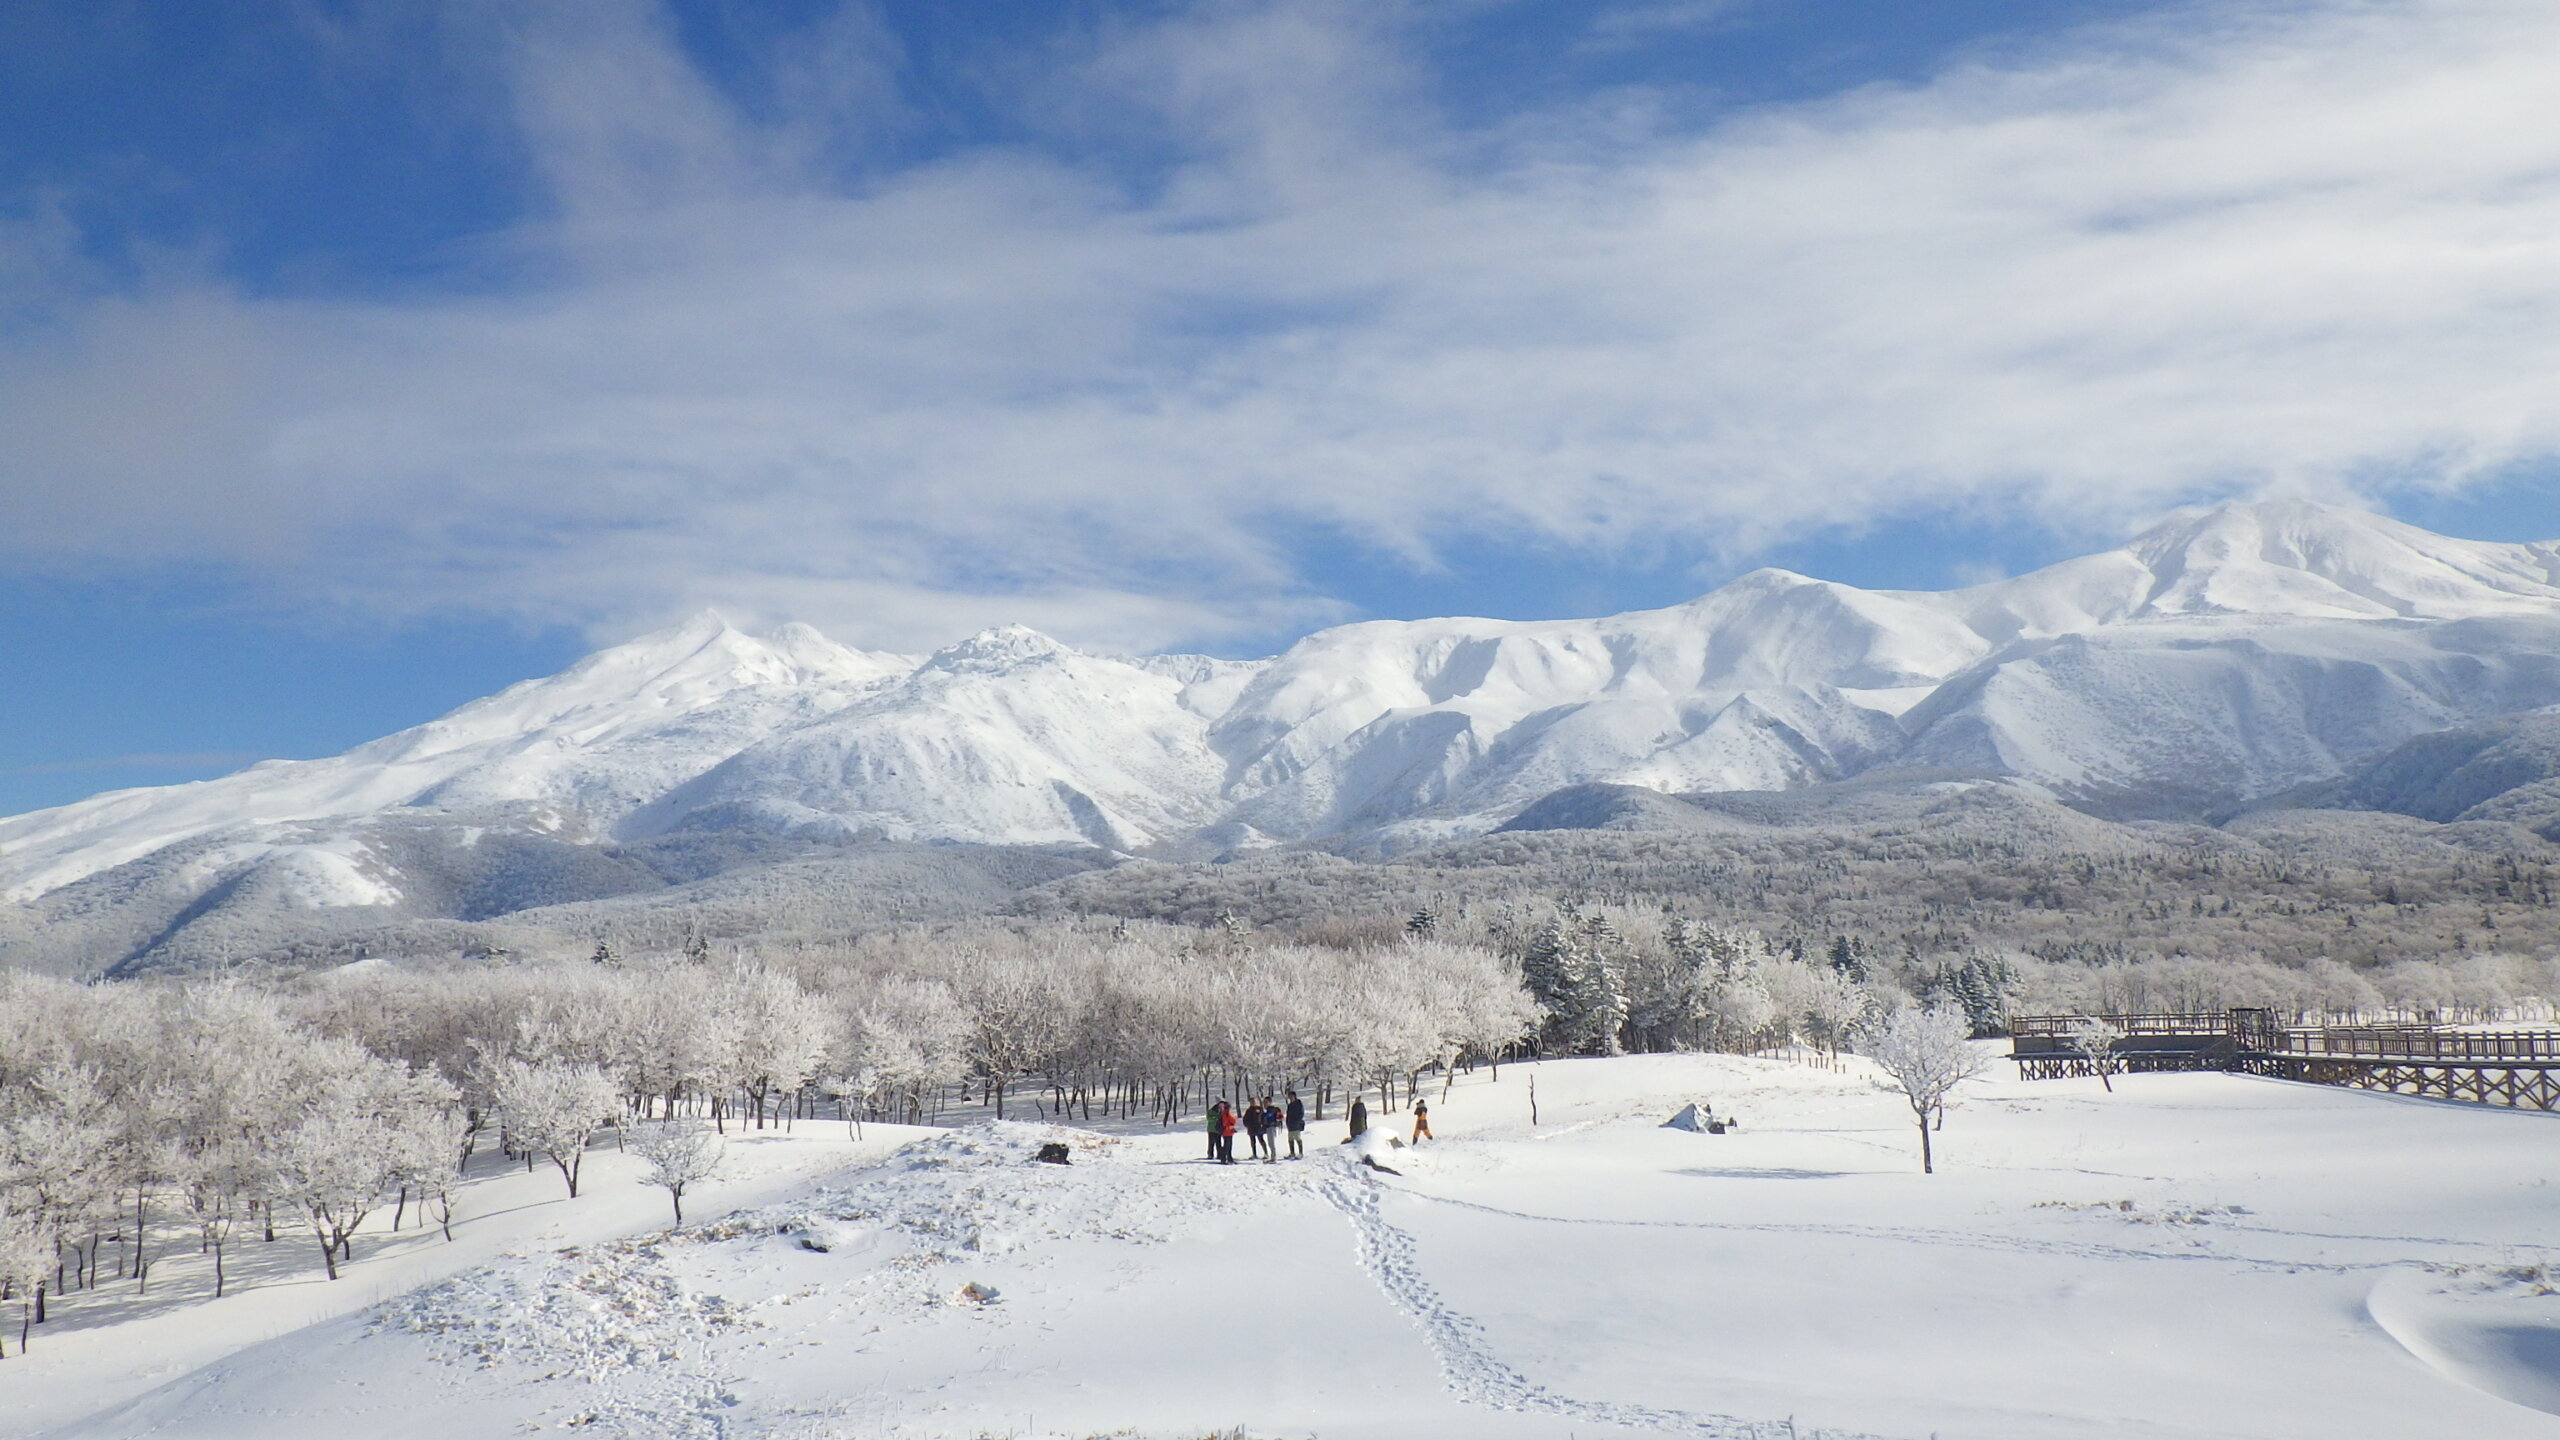 Sightseeing on Snowshoes: A Wintery Stroll on Shiretokogo Lake